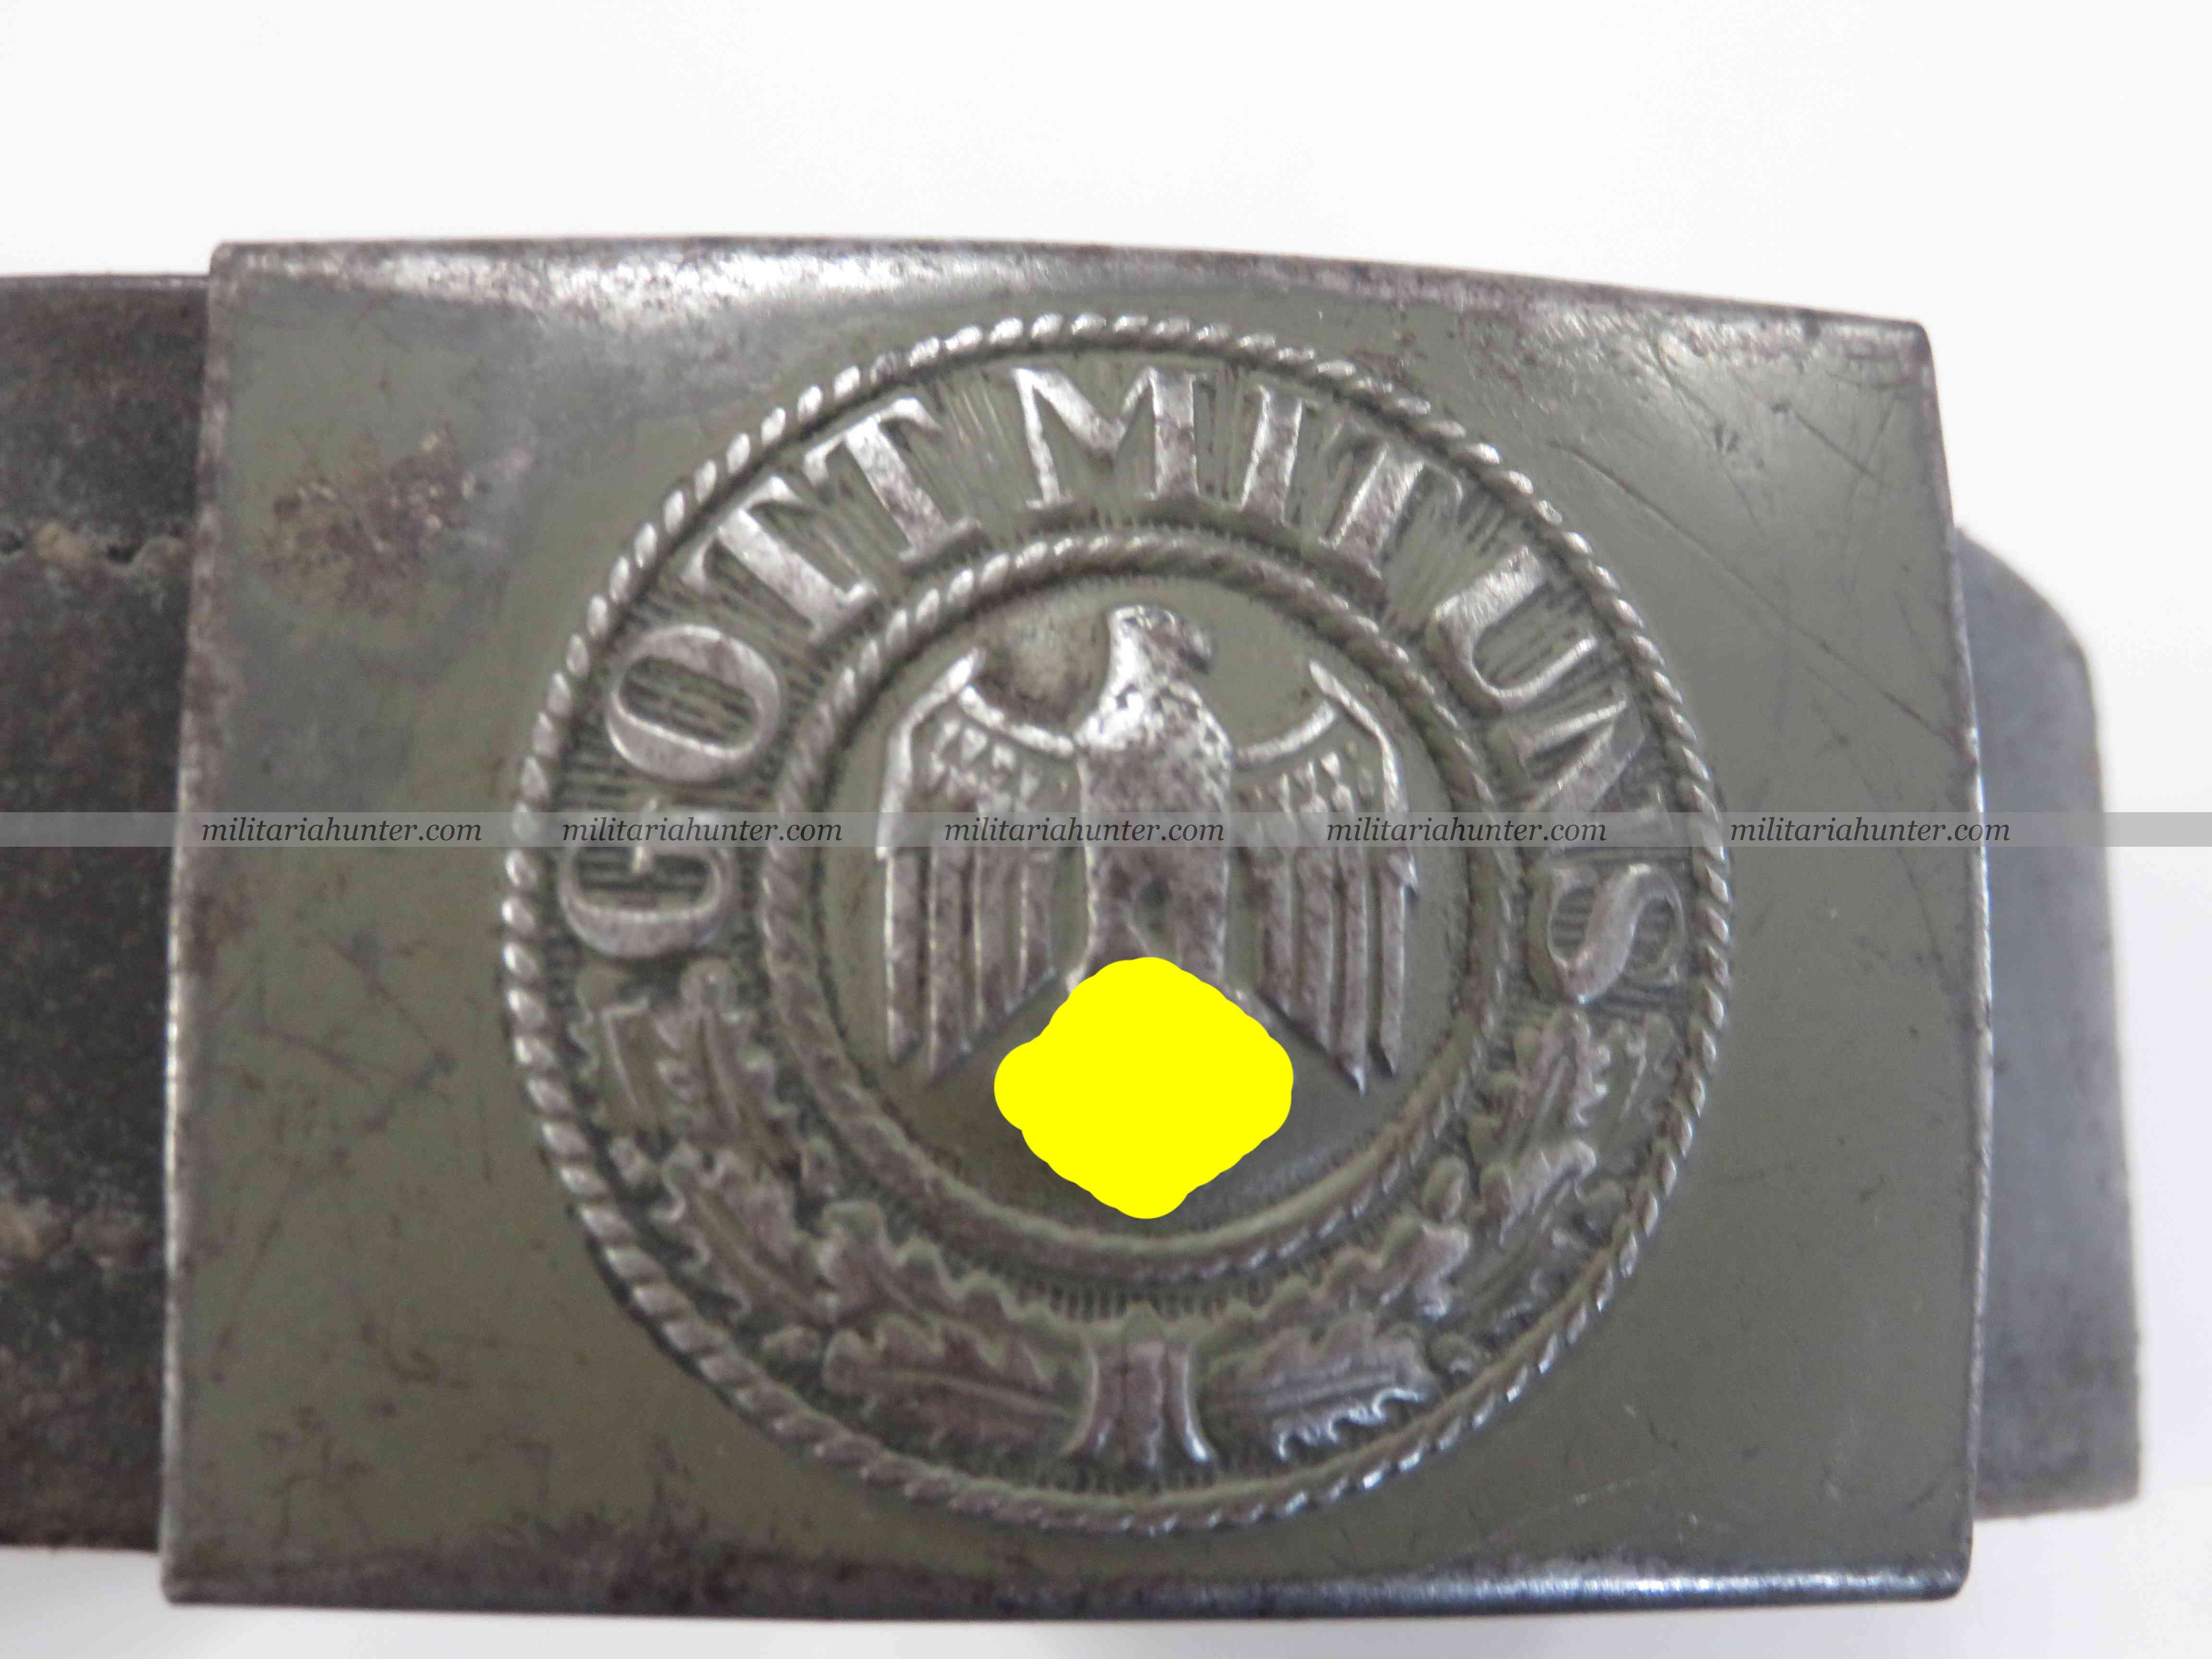 Militaria Hunter   Achat Vente Estimation Militaria ww1 ww2 WW2 german Heer belt and buckle - ceinturon allemand Heer 1940